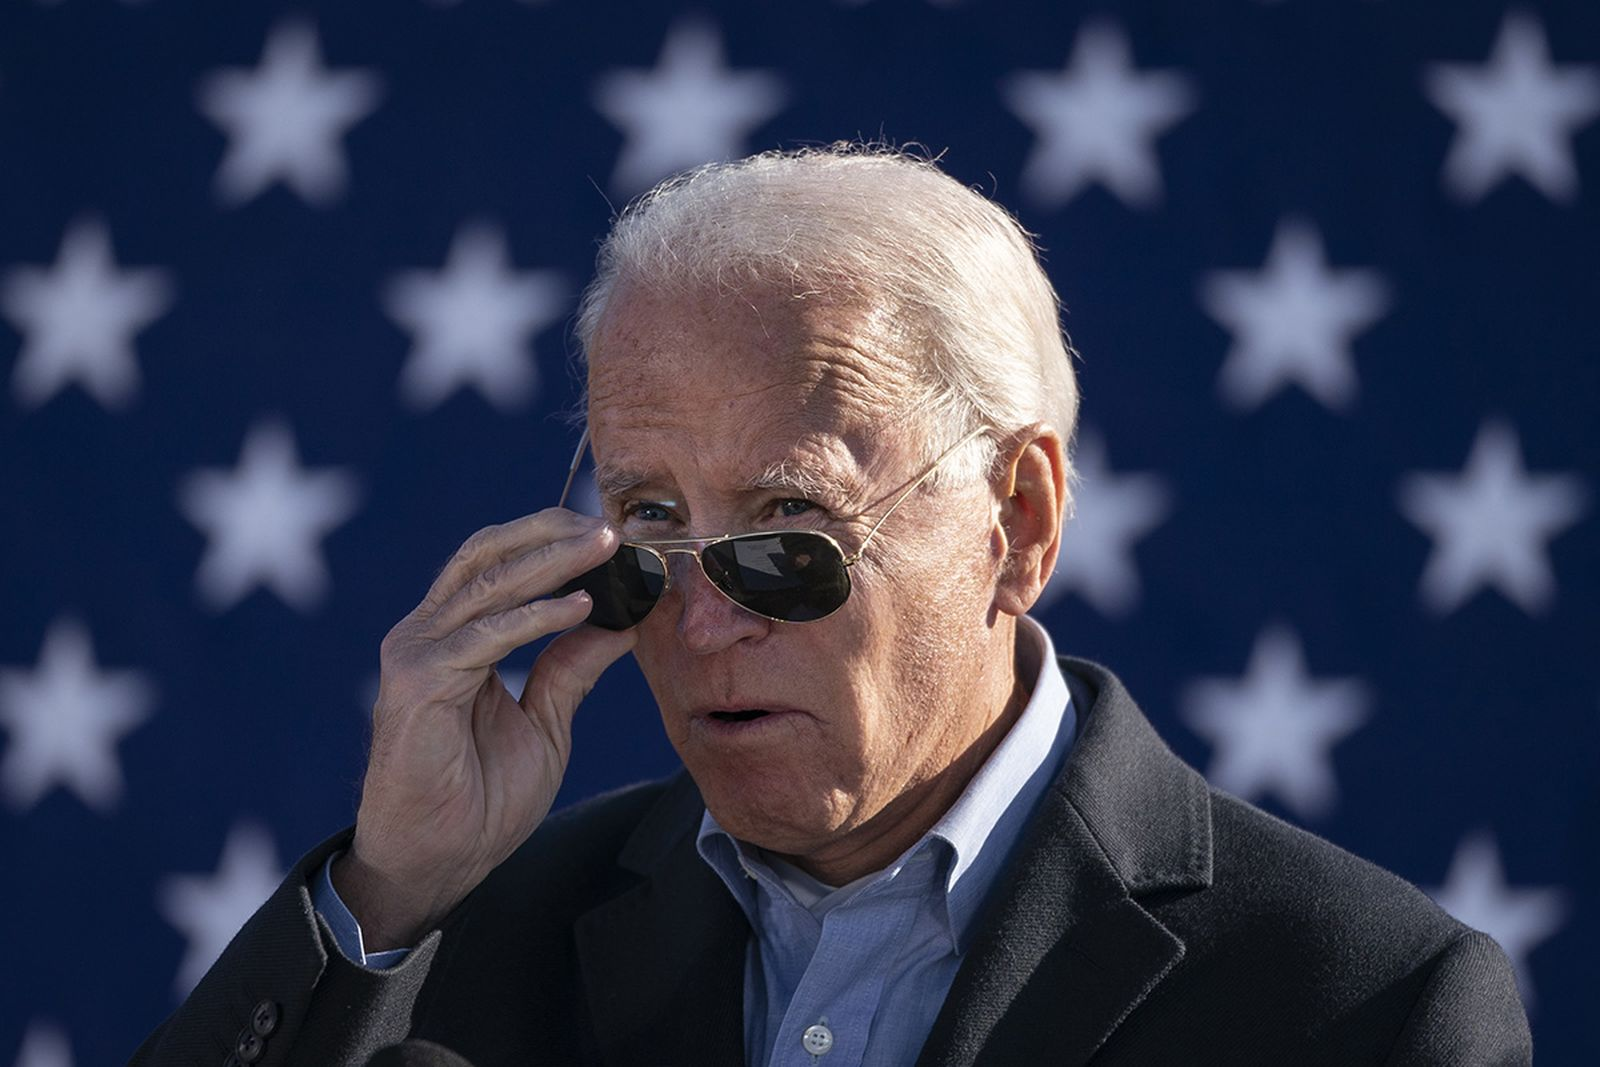 Joe Biden takes off his sunglasses while speaking at a campaign